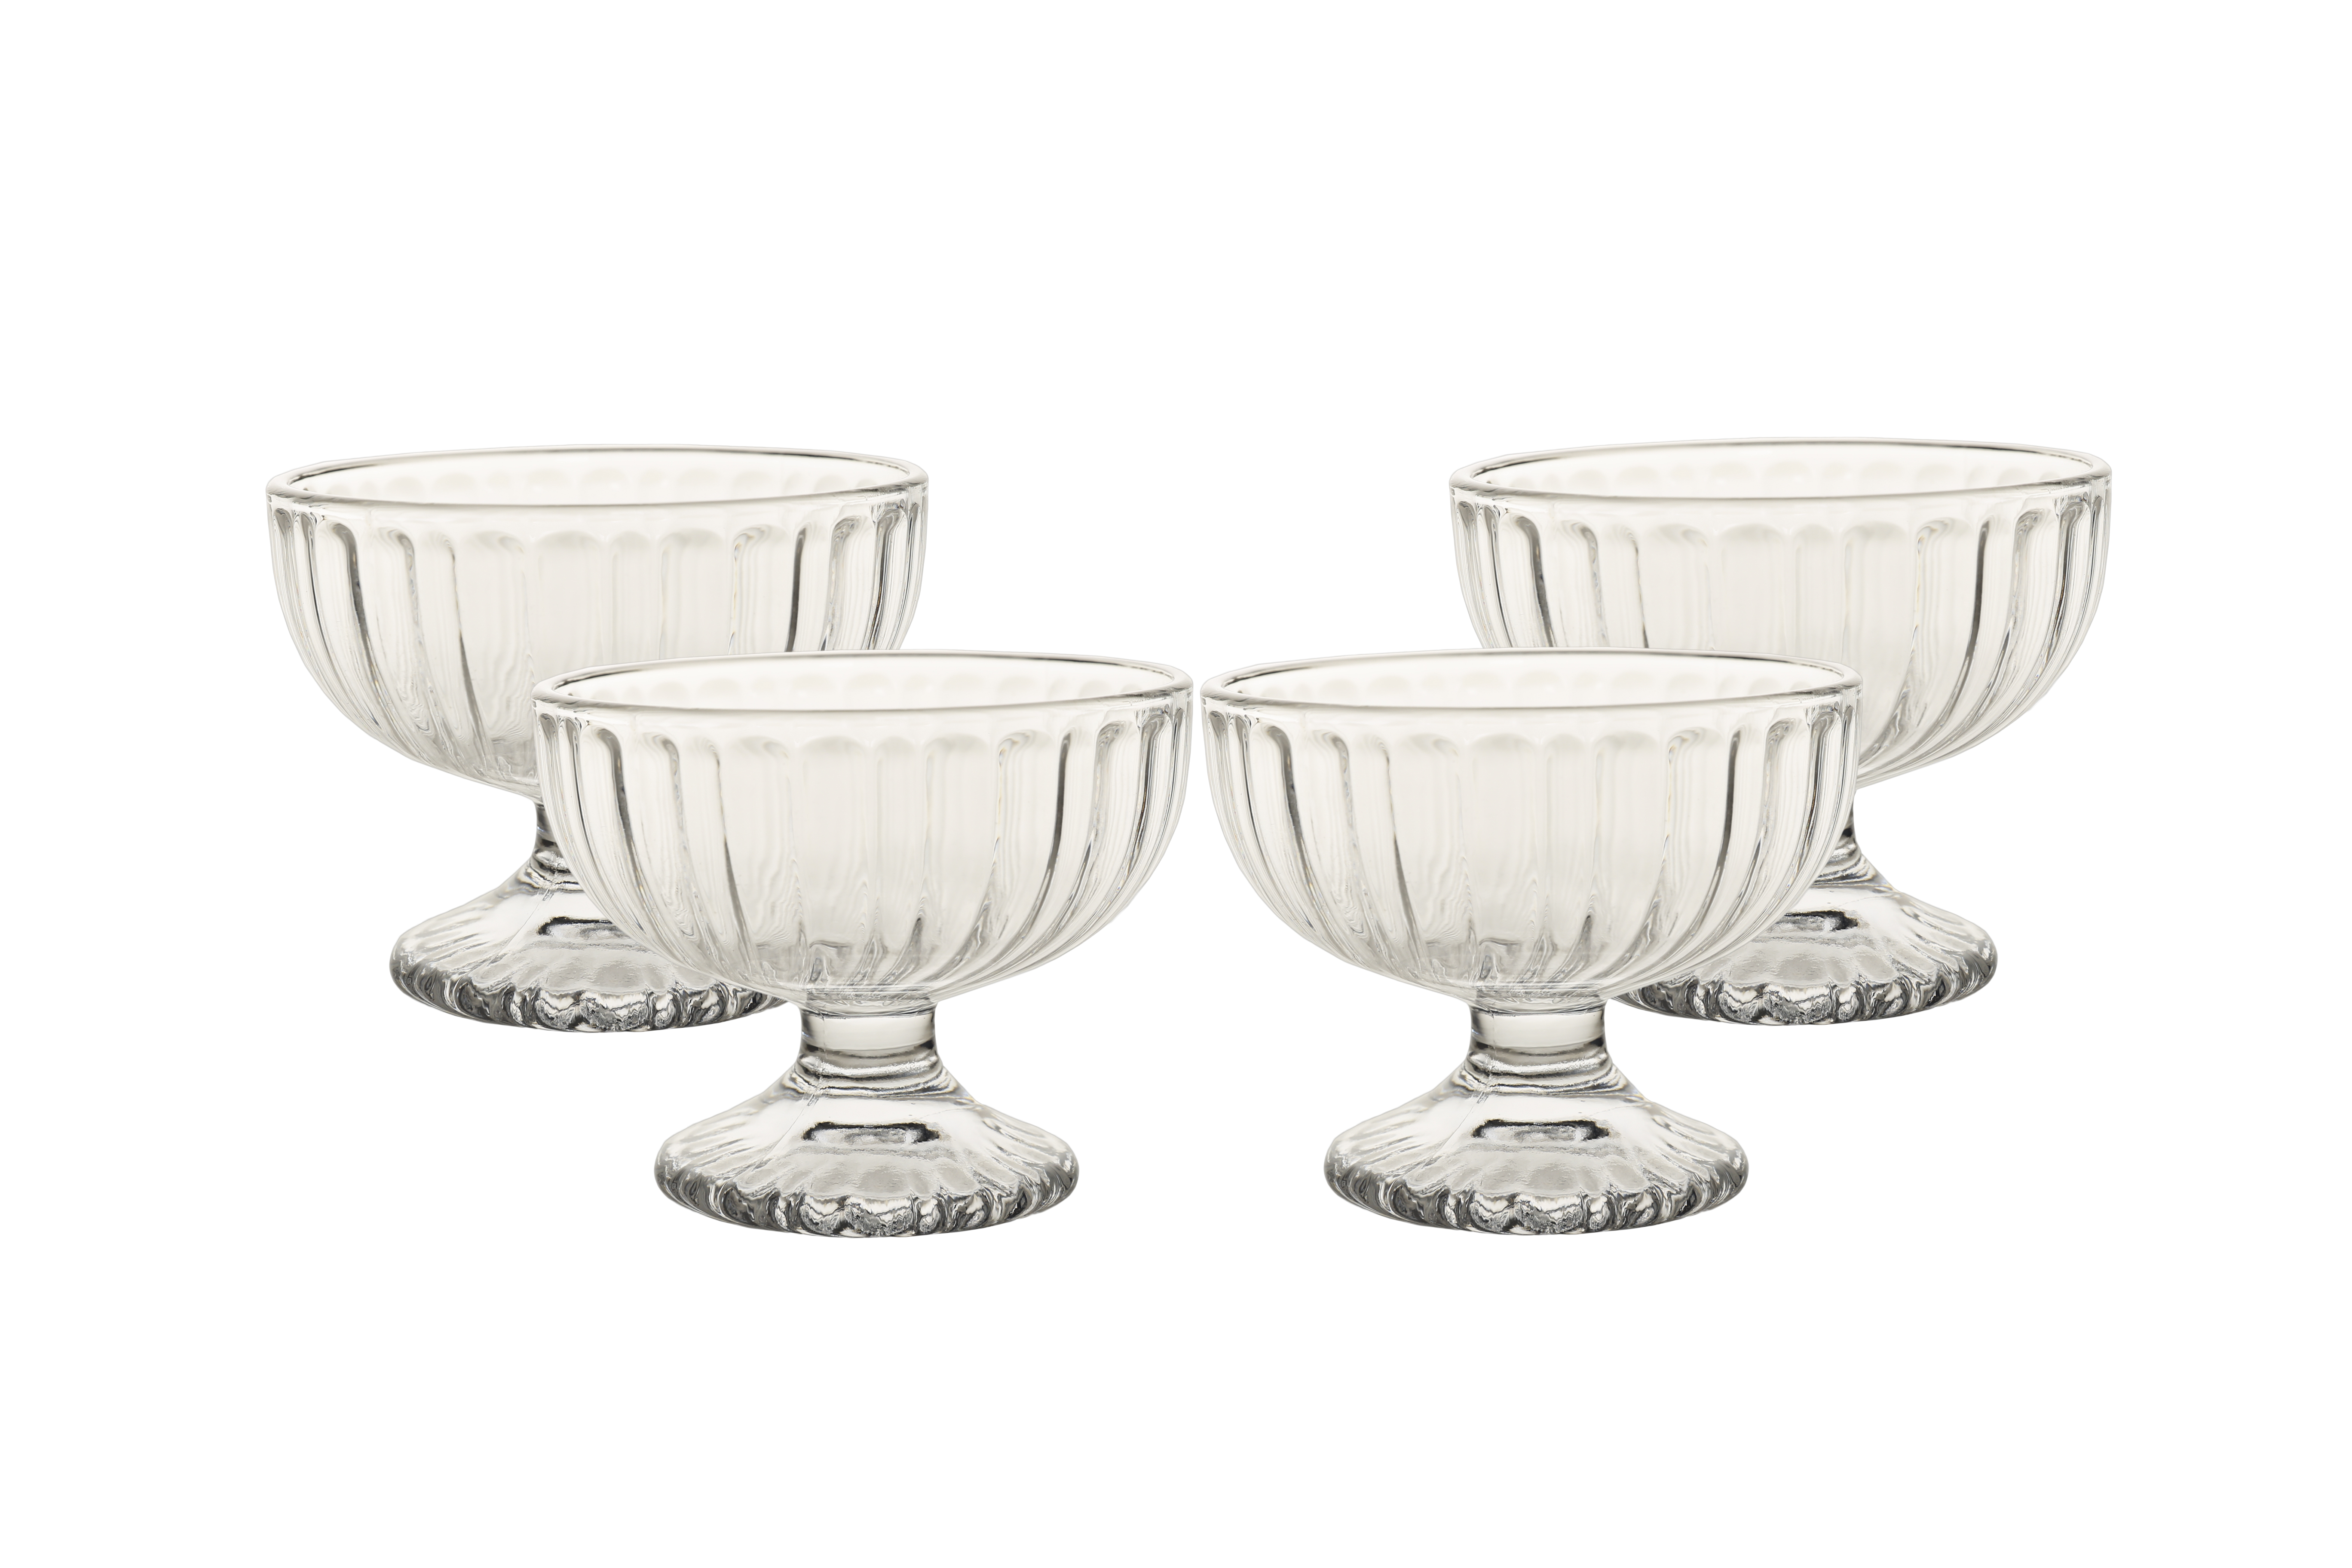 Crescent Alice Icecream Bowls Set Of Four Glass Dessert Sets in Transparent Colour by HomeTown